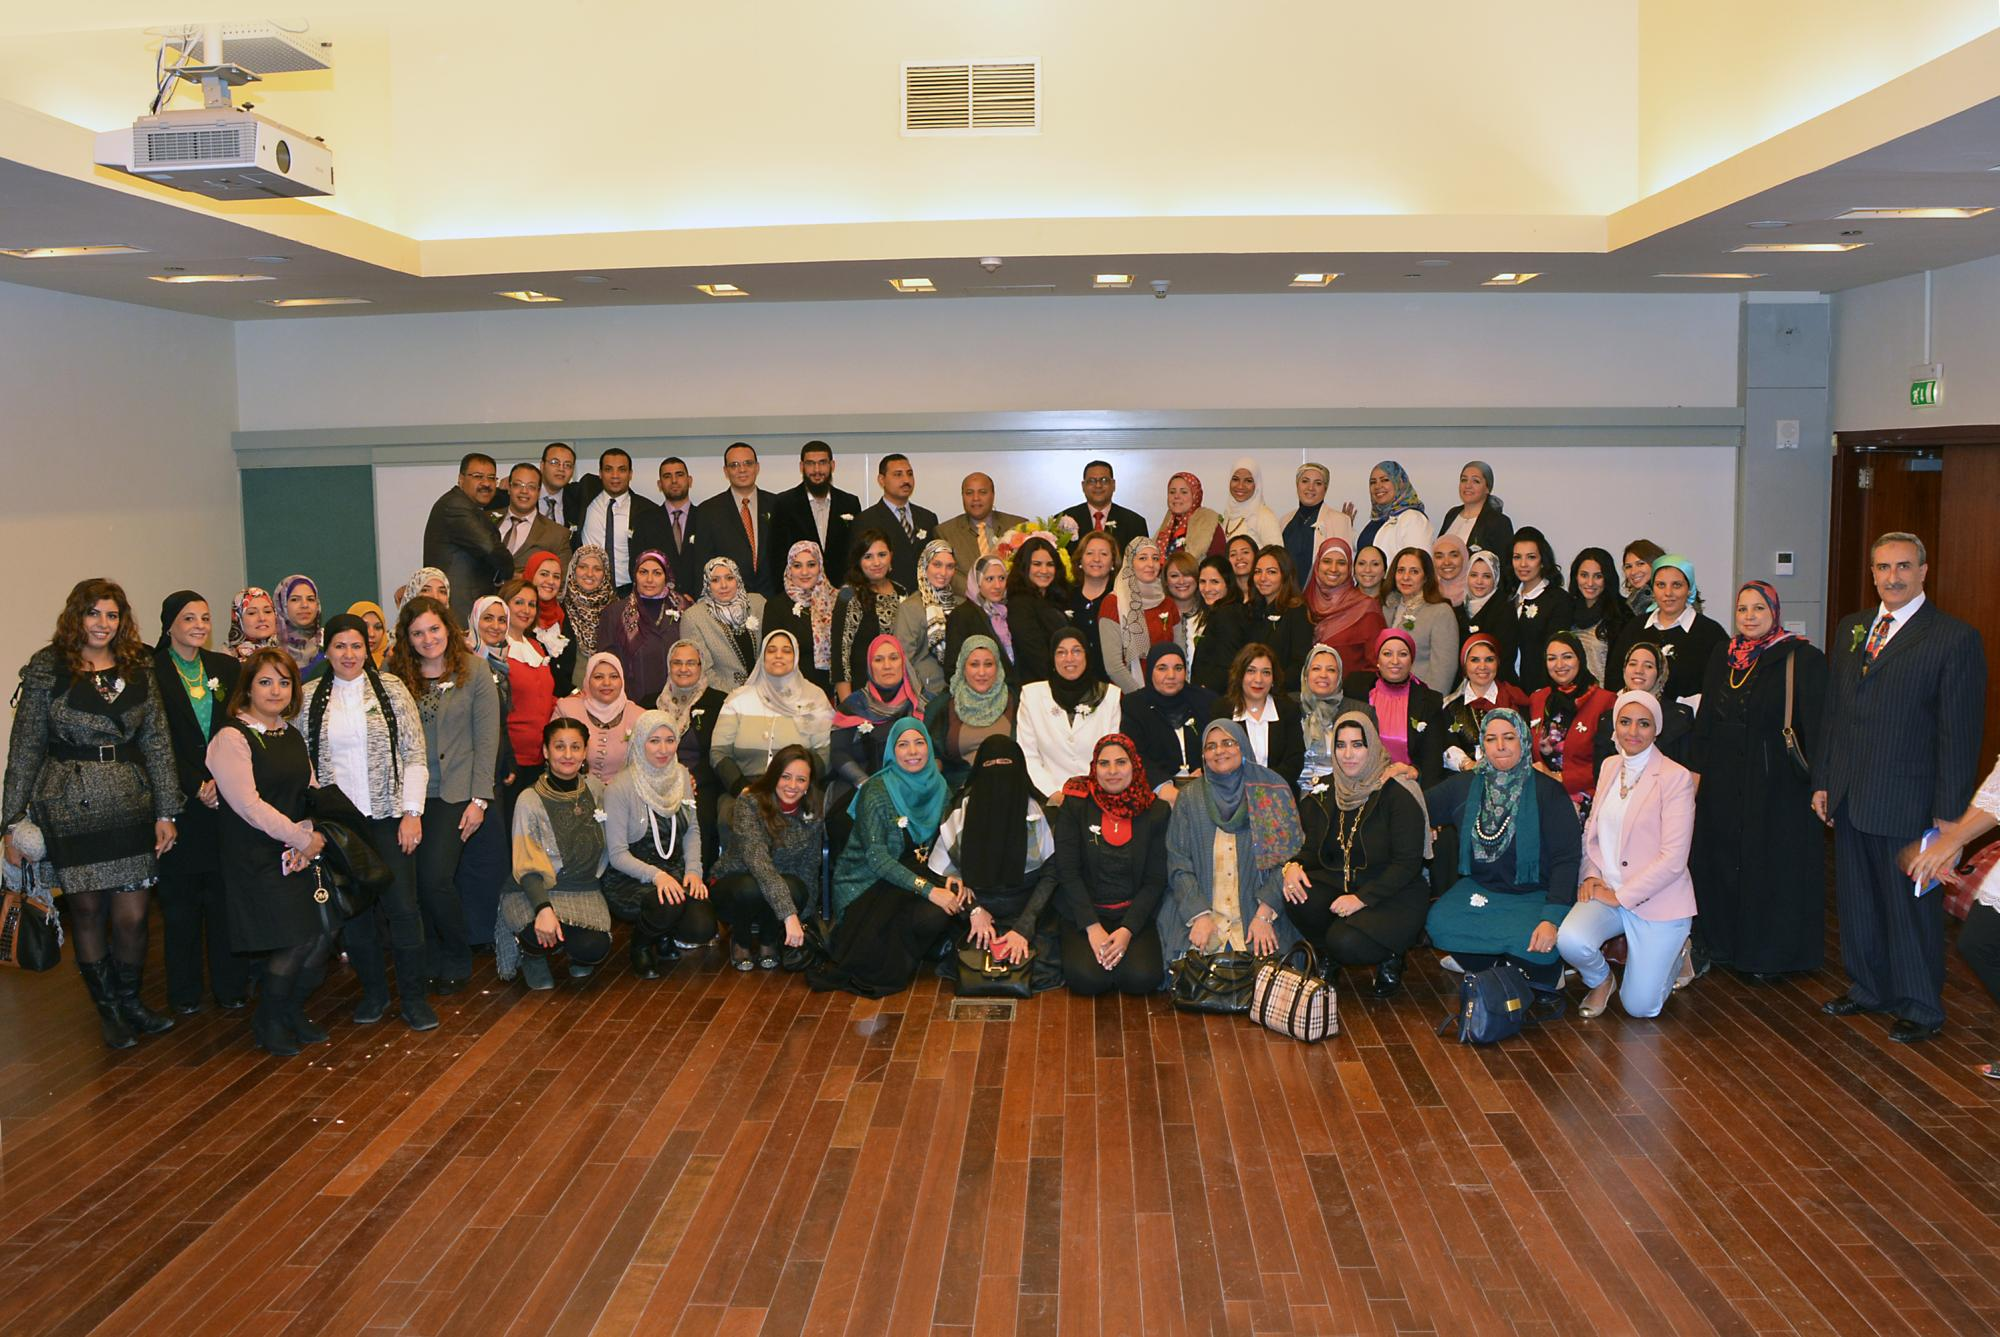 Graduates of the Professional Educator Diploma Fellowship at AUC's Graduate School of Education are trained to become facilitators of learning